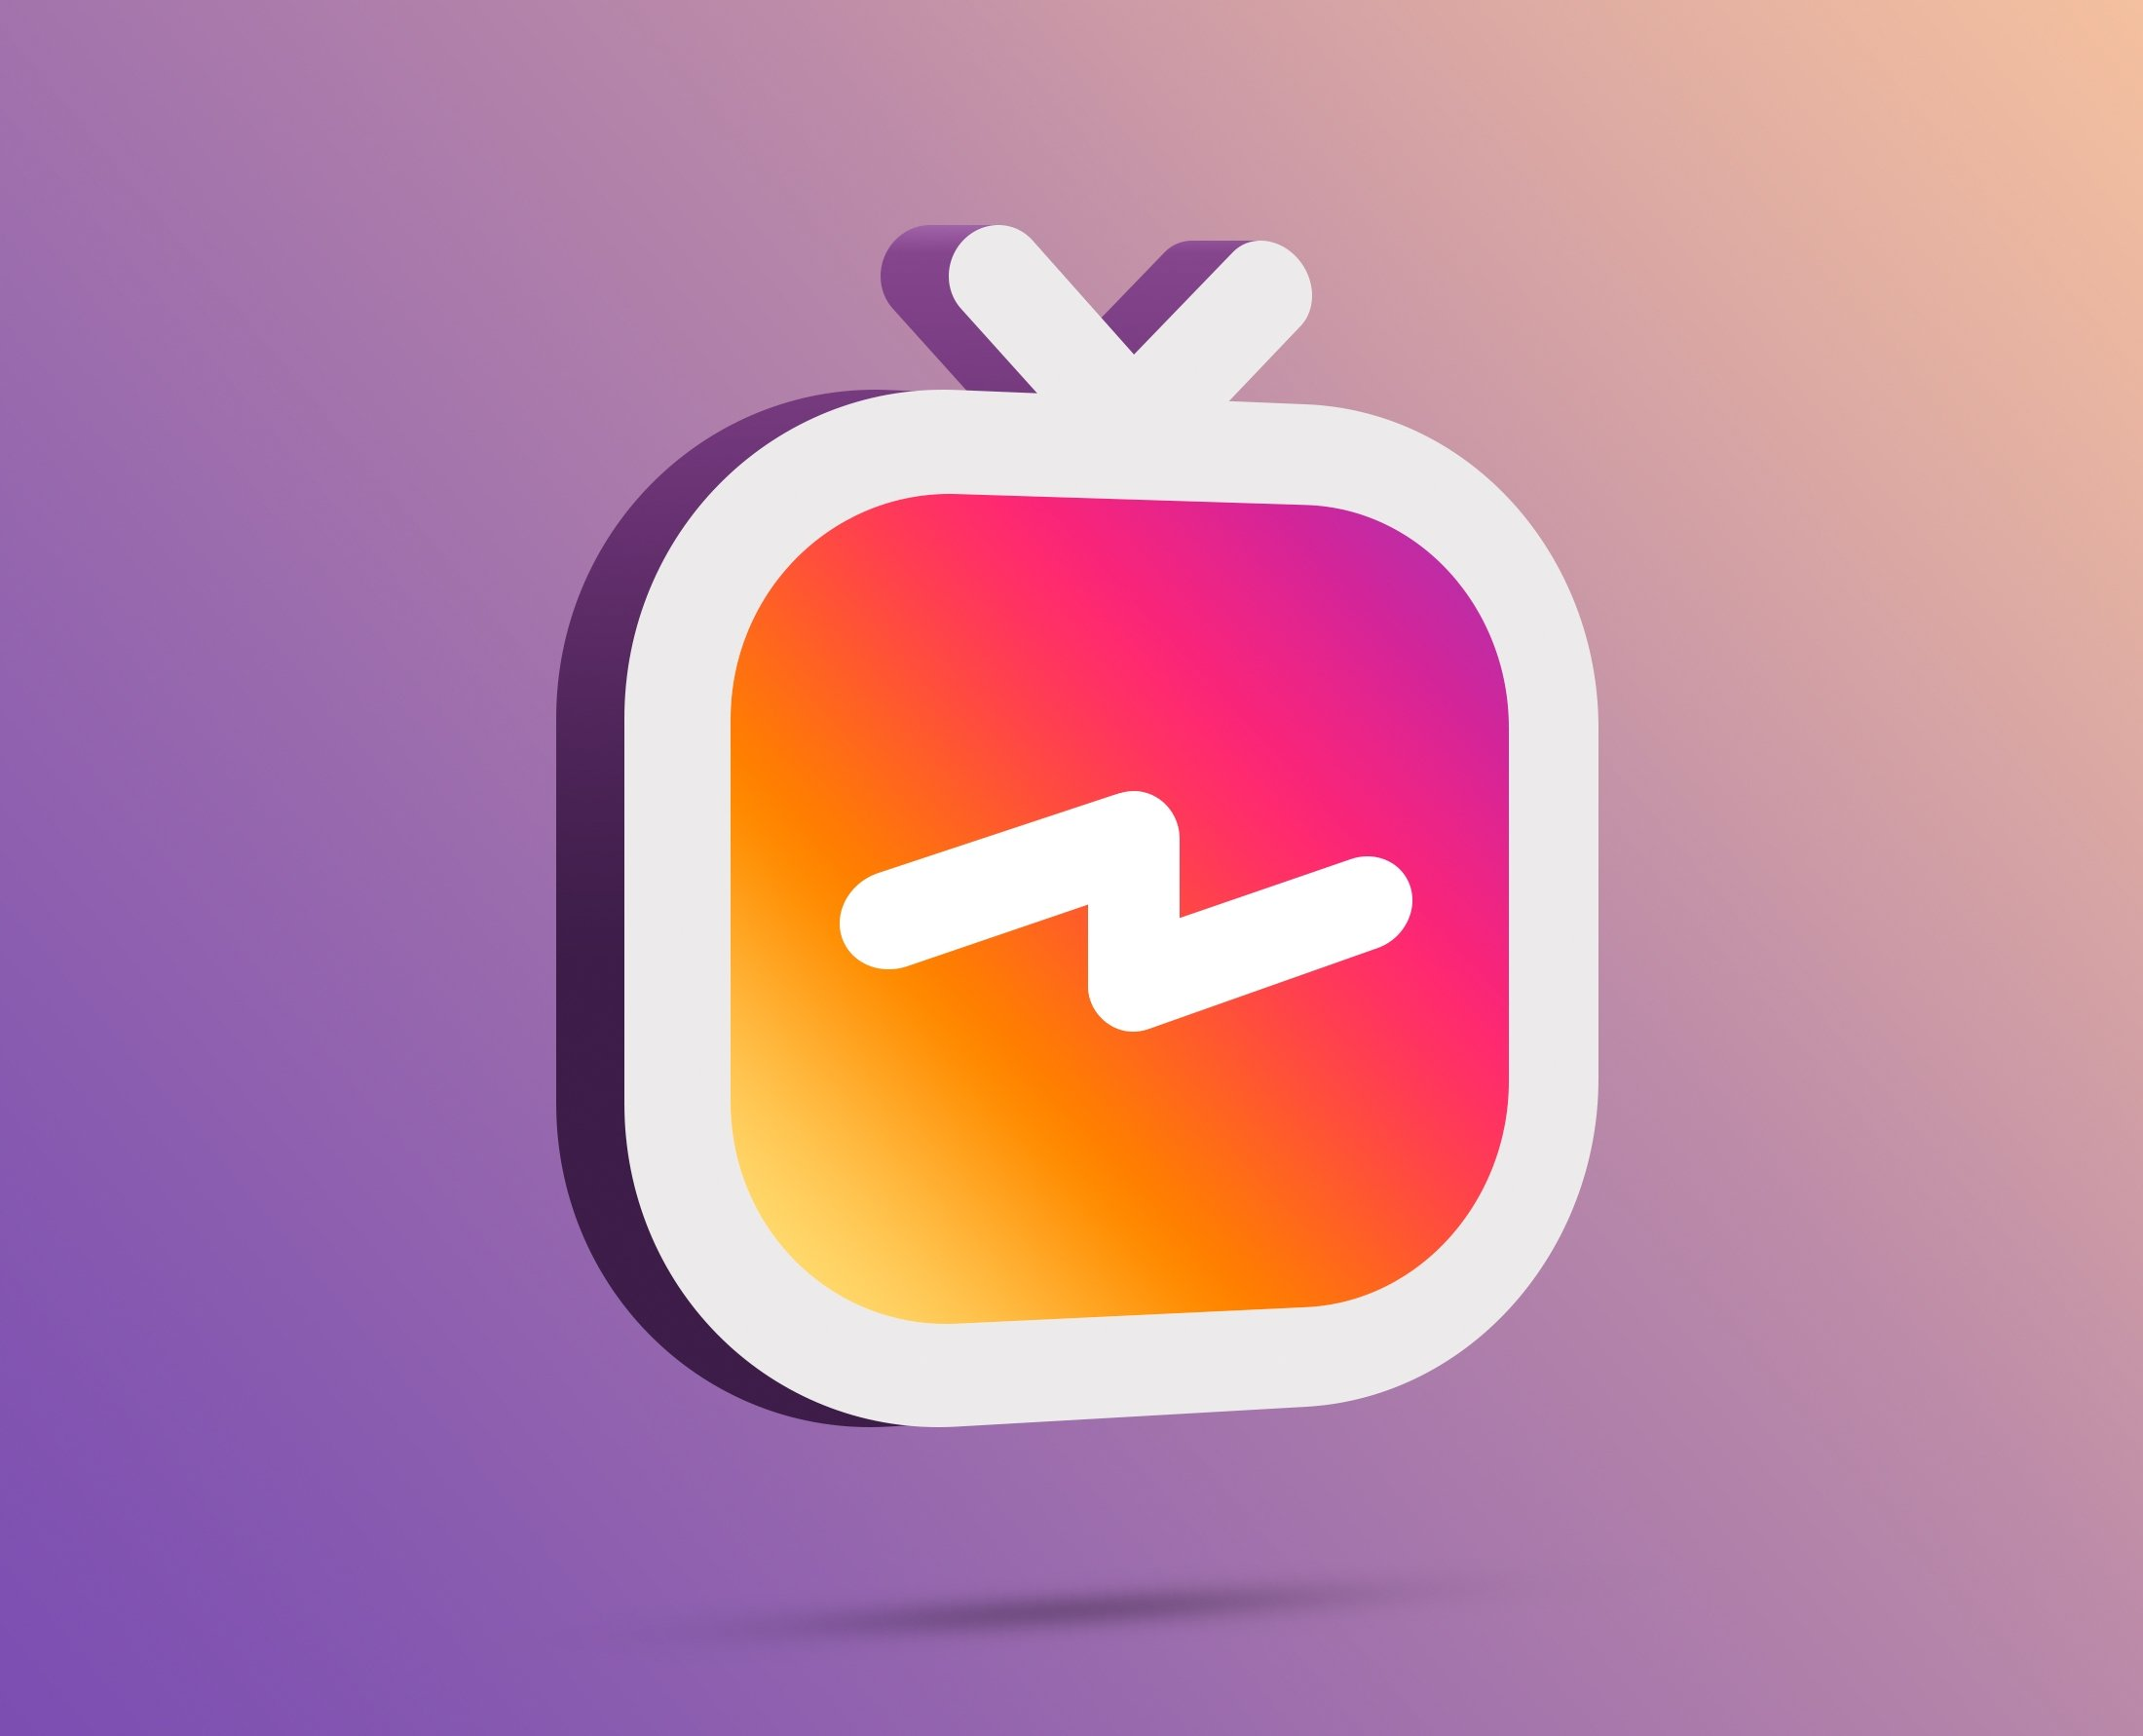 logo instagram tv en 3 dimensiones